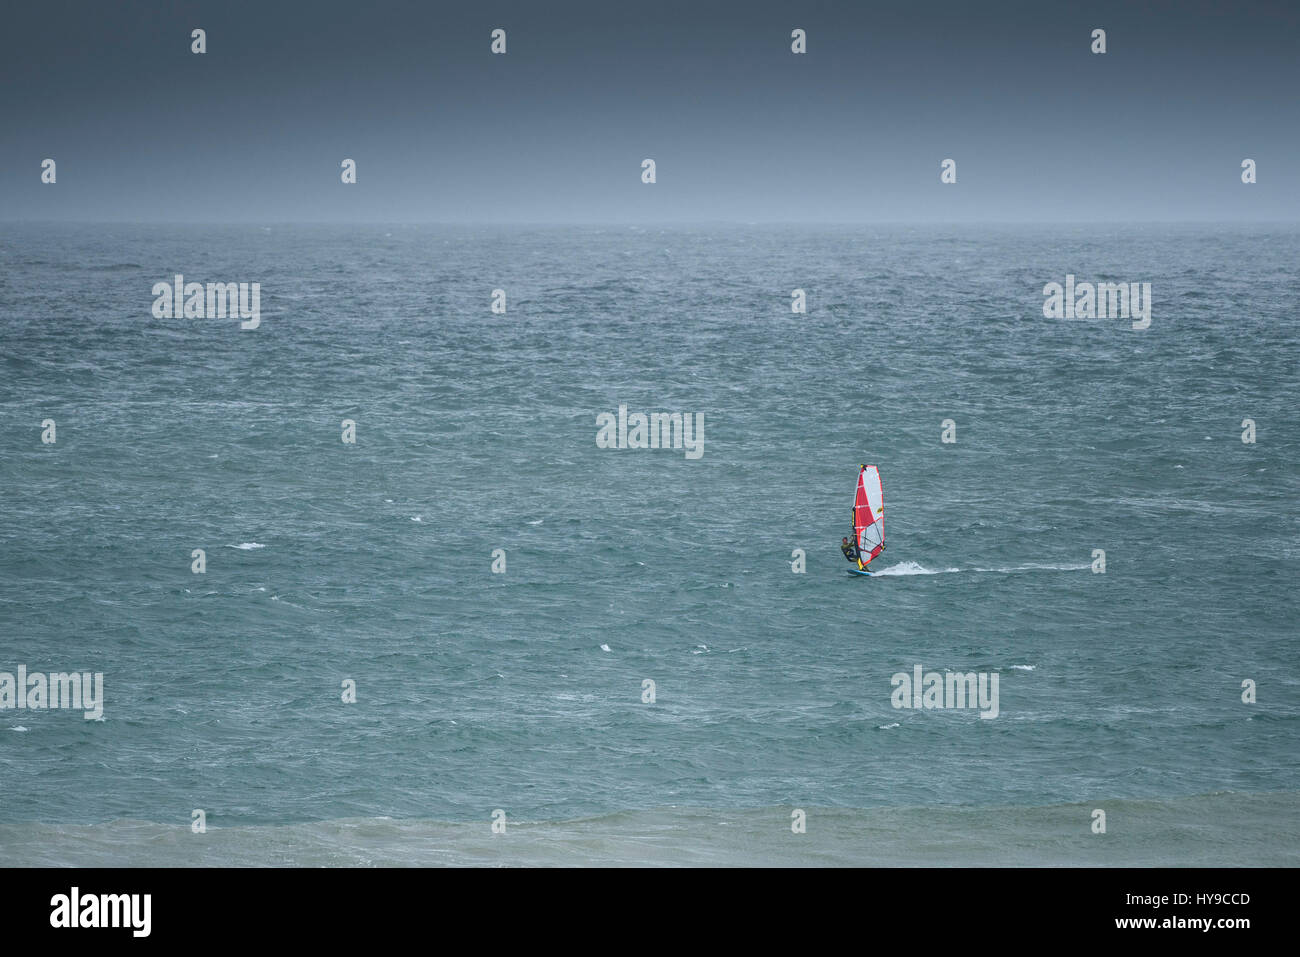 Windsurfer Sea Watersports Leisure activity Hobby Extreme sport; Ocean Skill Balance - Stock Image